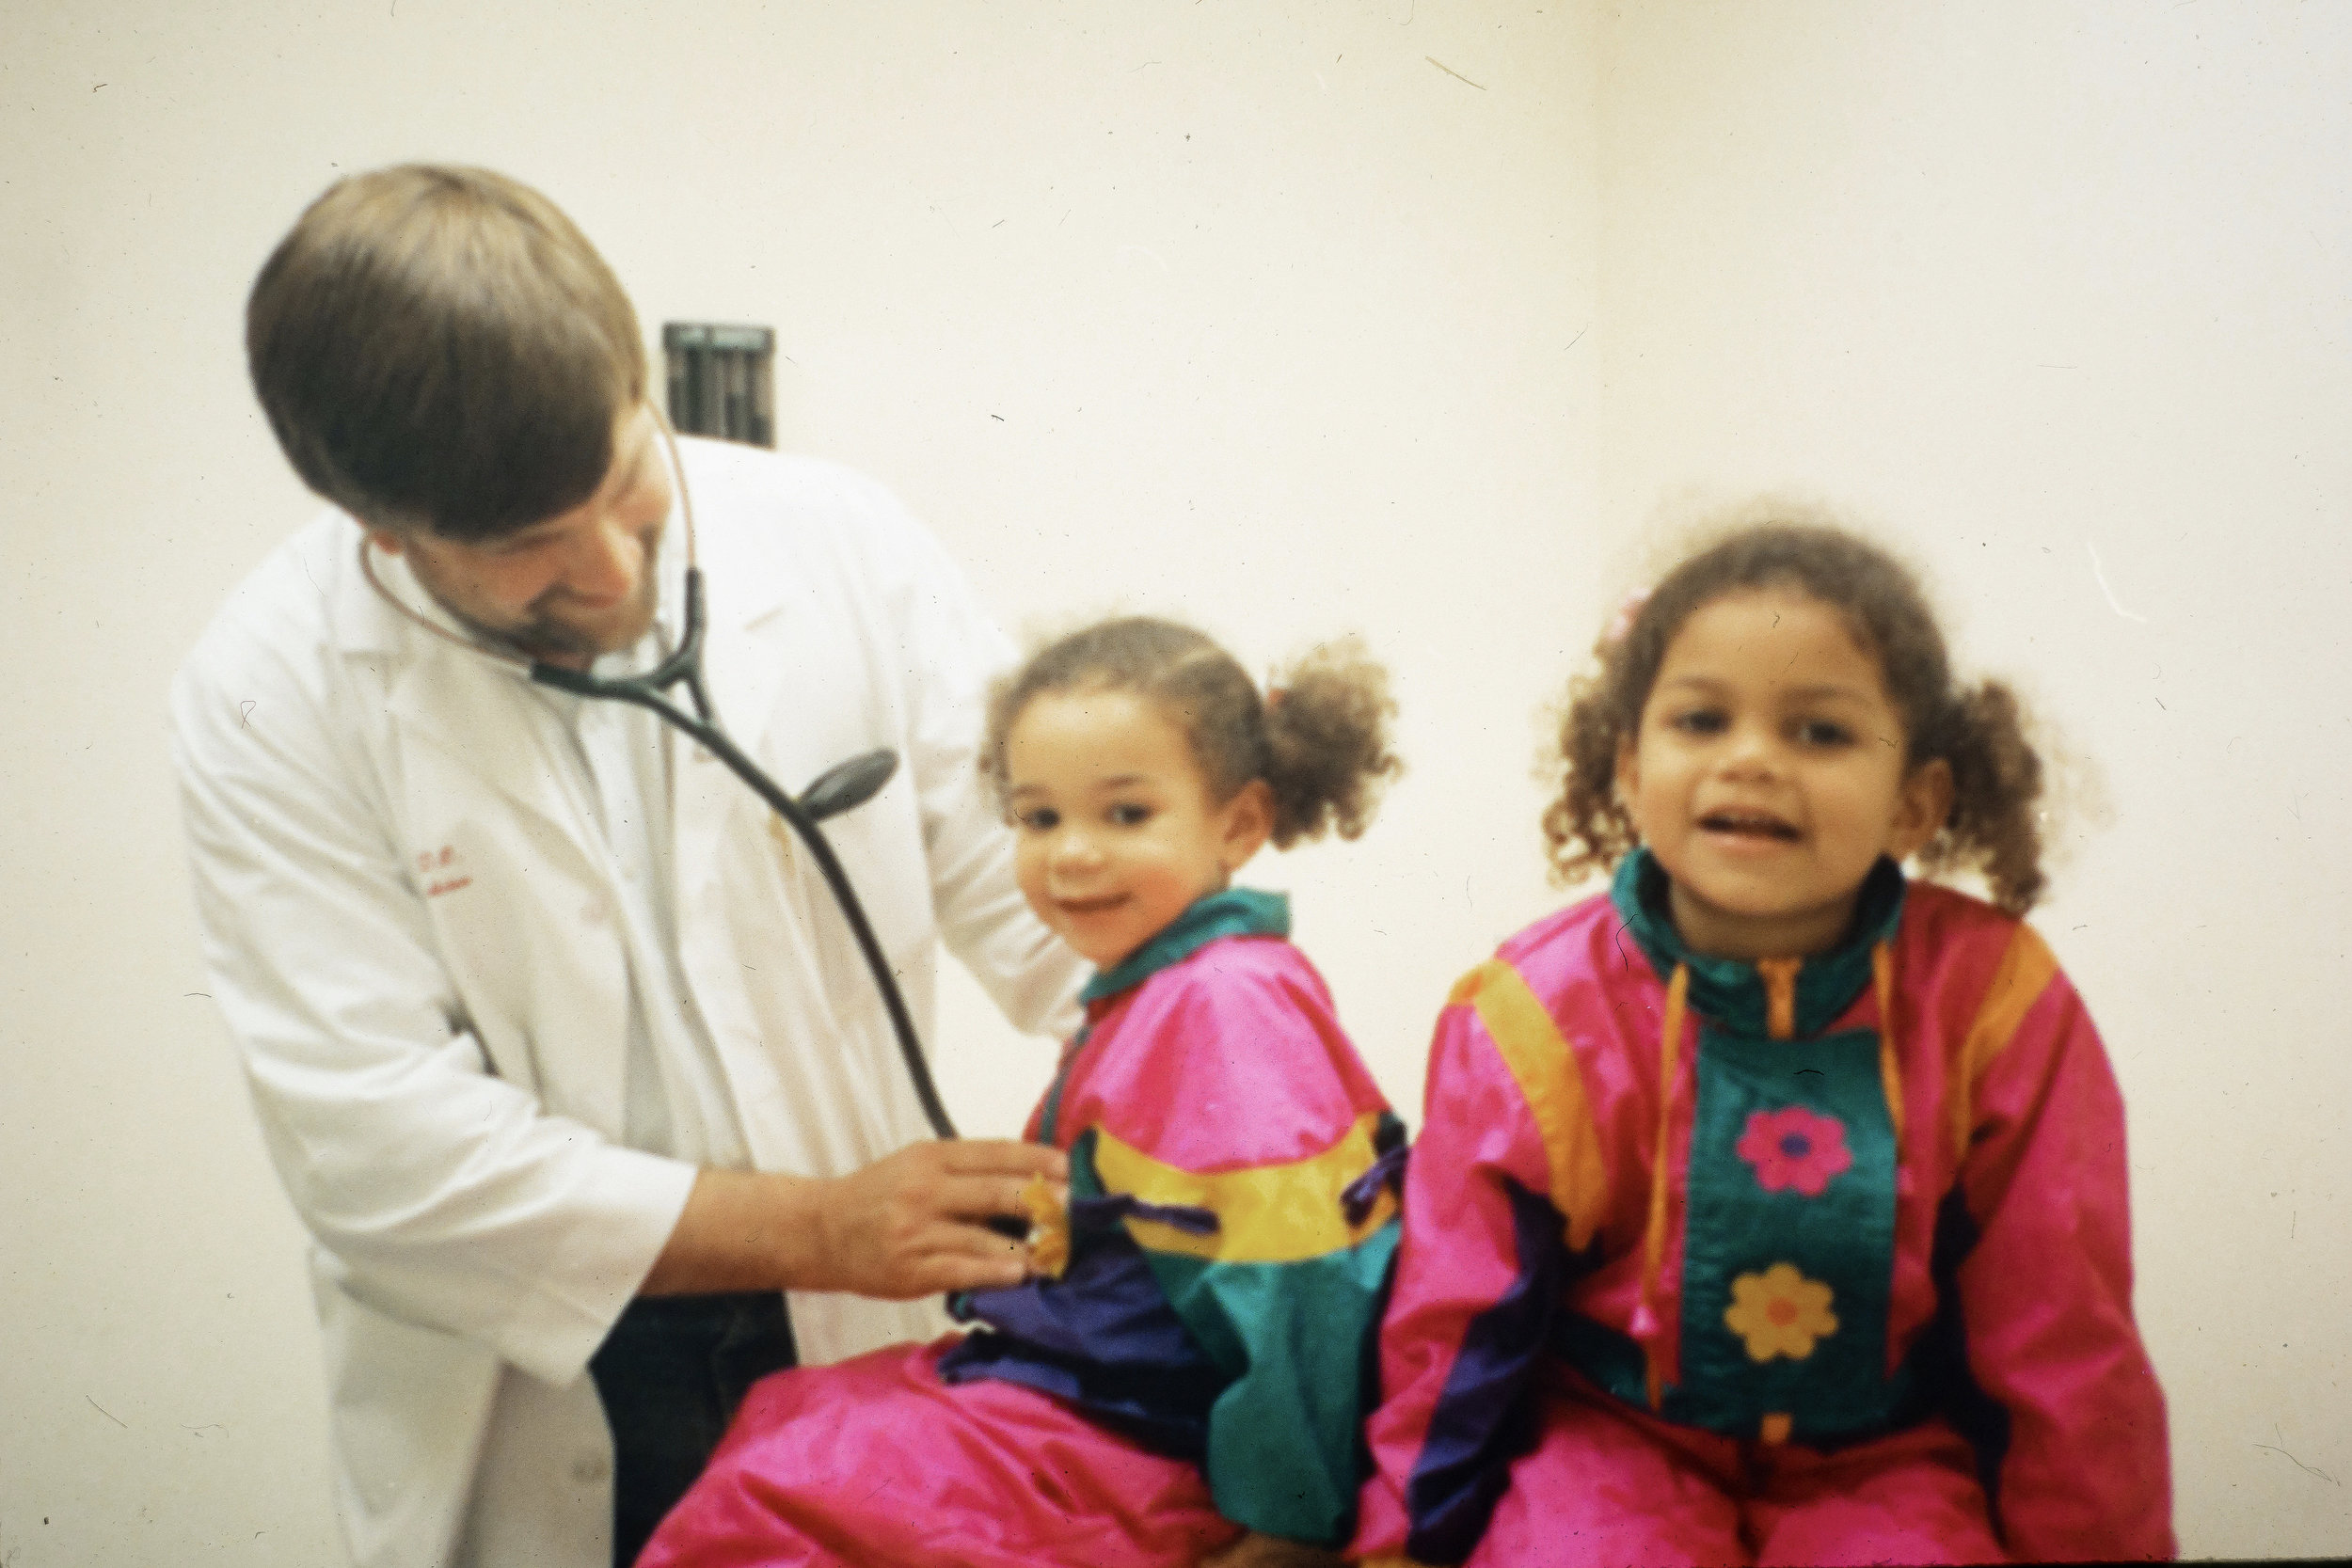 Dr. Robb White treats a couple of young patients